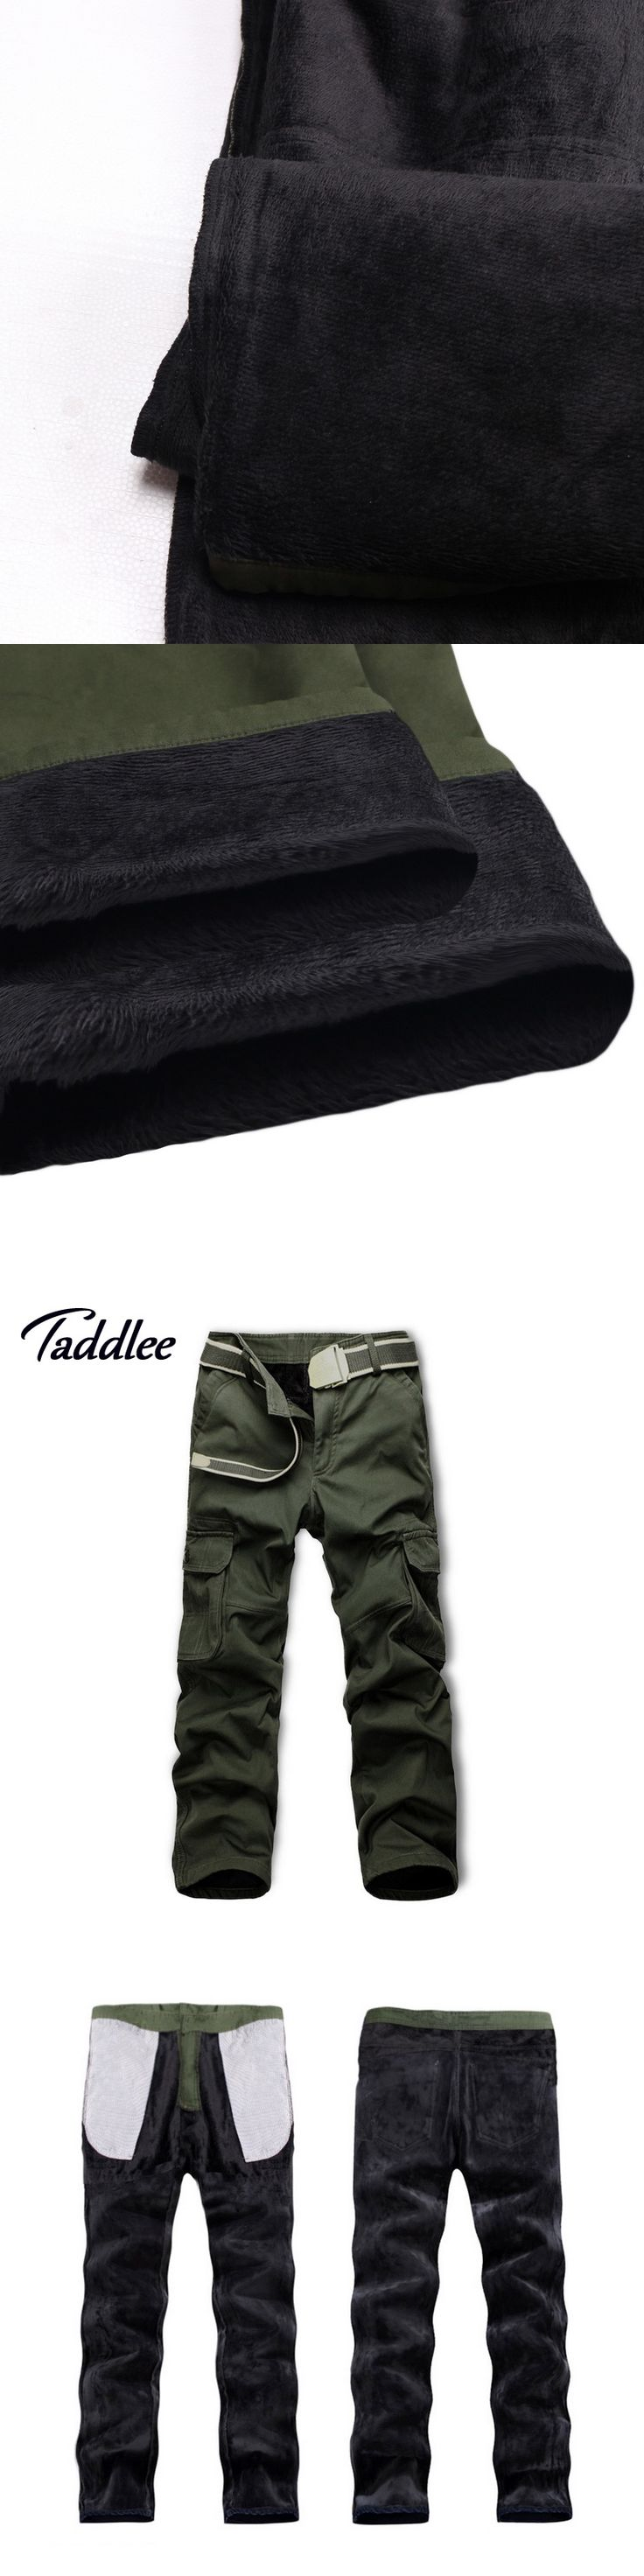 Man Multi-pocket Casual Cotton Long Military Pants Male Men Work Cargo Overalls Loose Camouflage Pants Leisure Straight Trousers